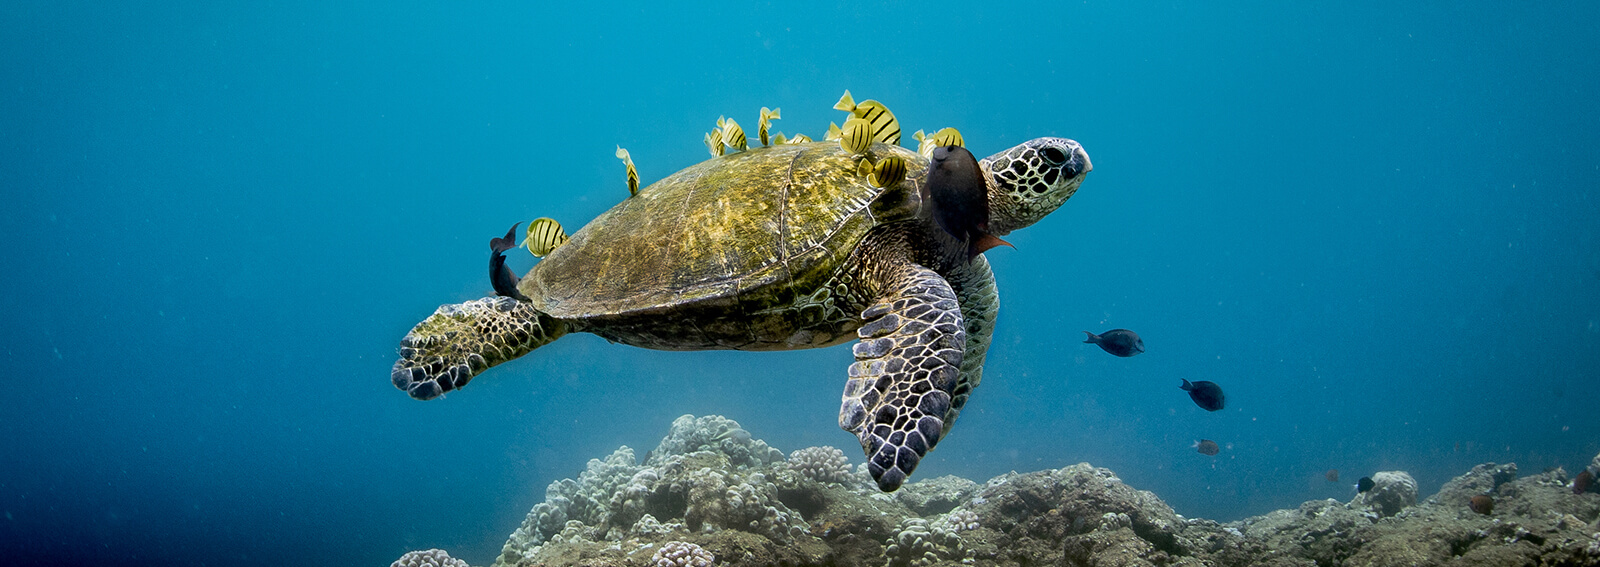 A sea turtle swims with yellow fish clinging to its shell